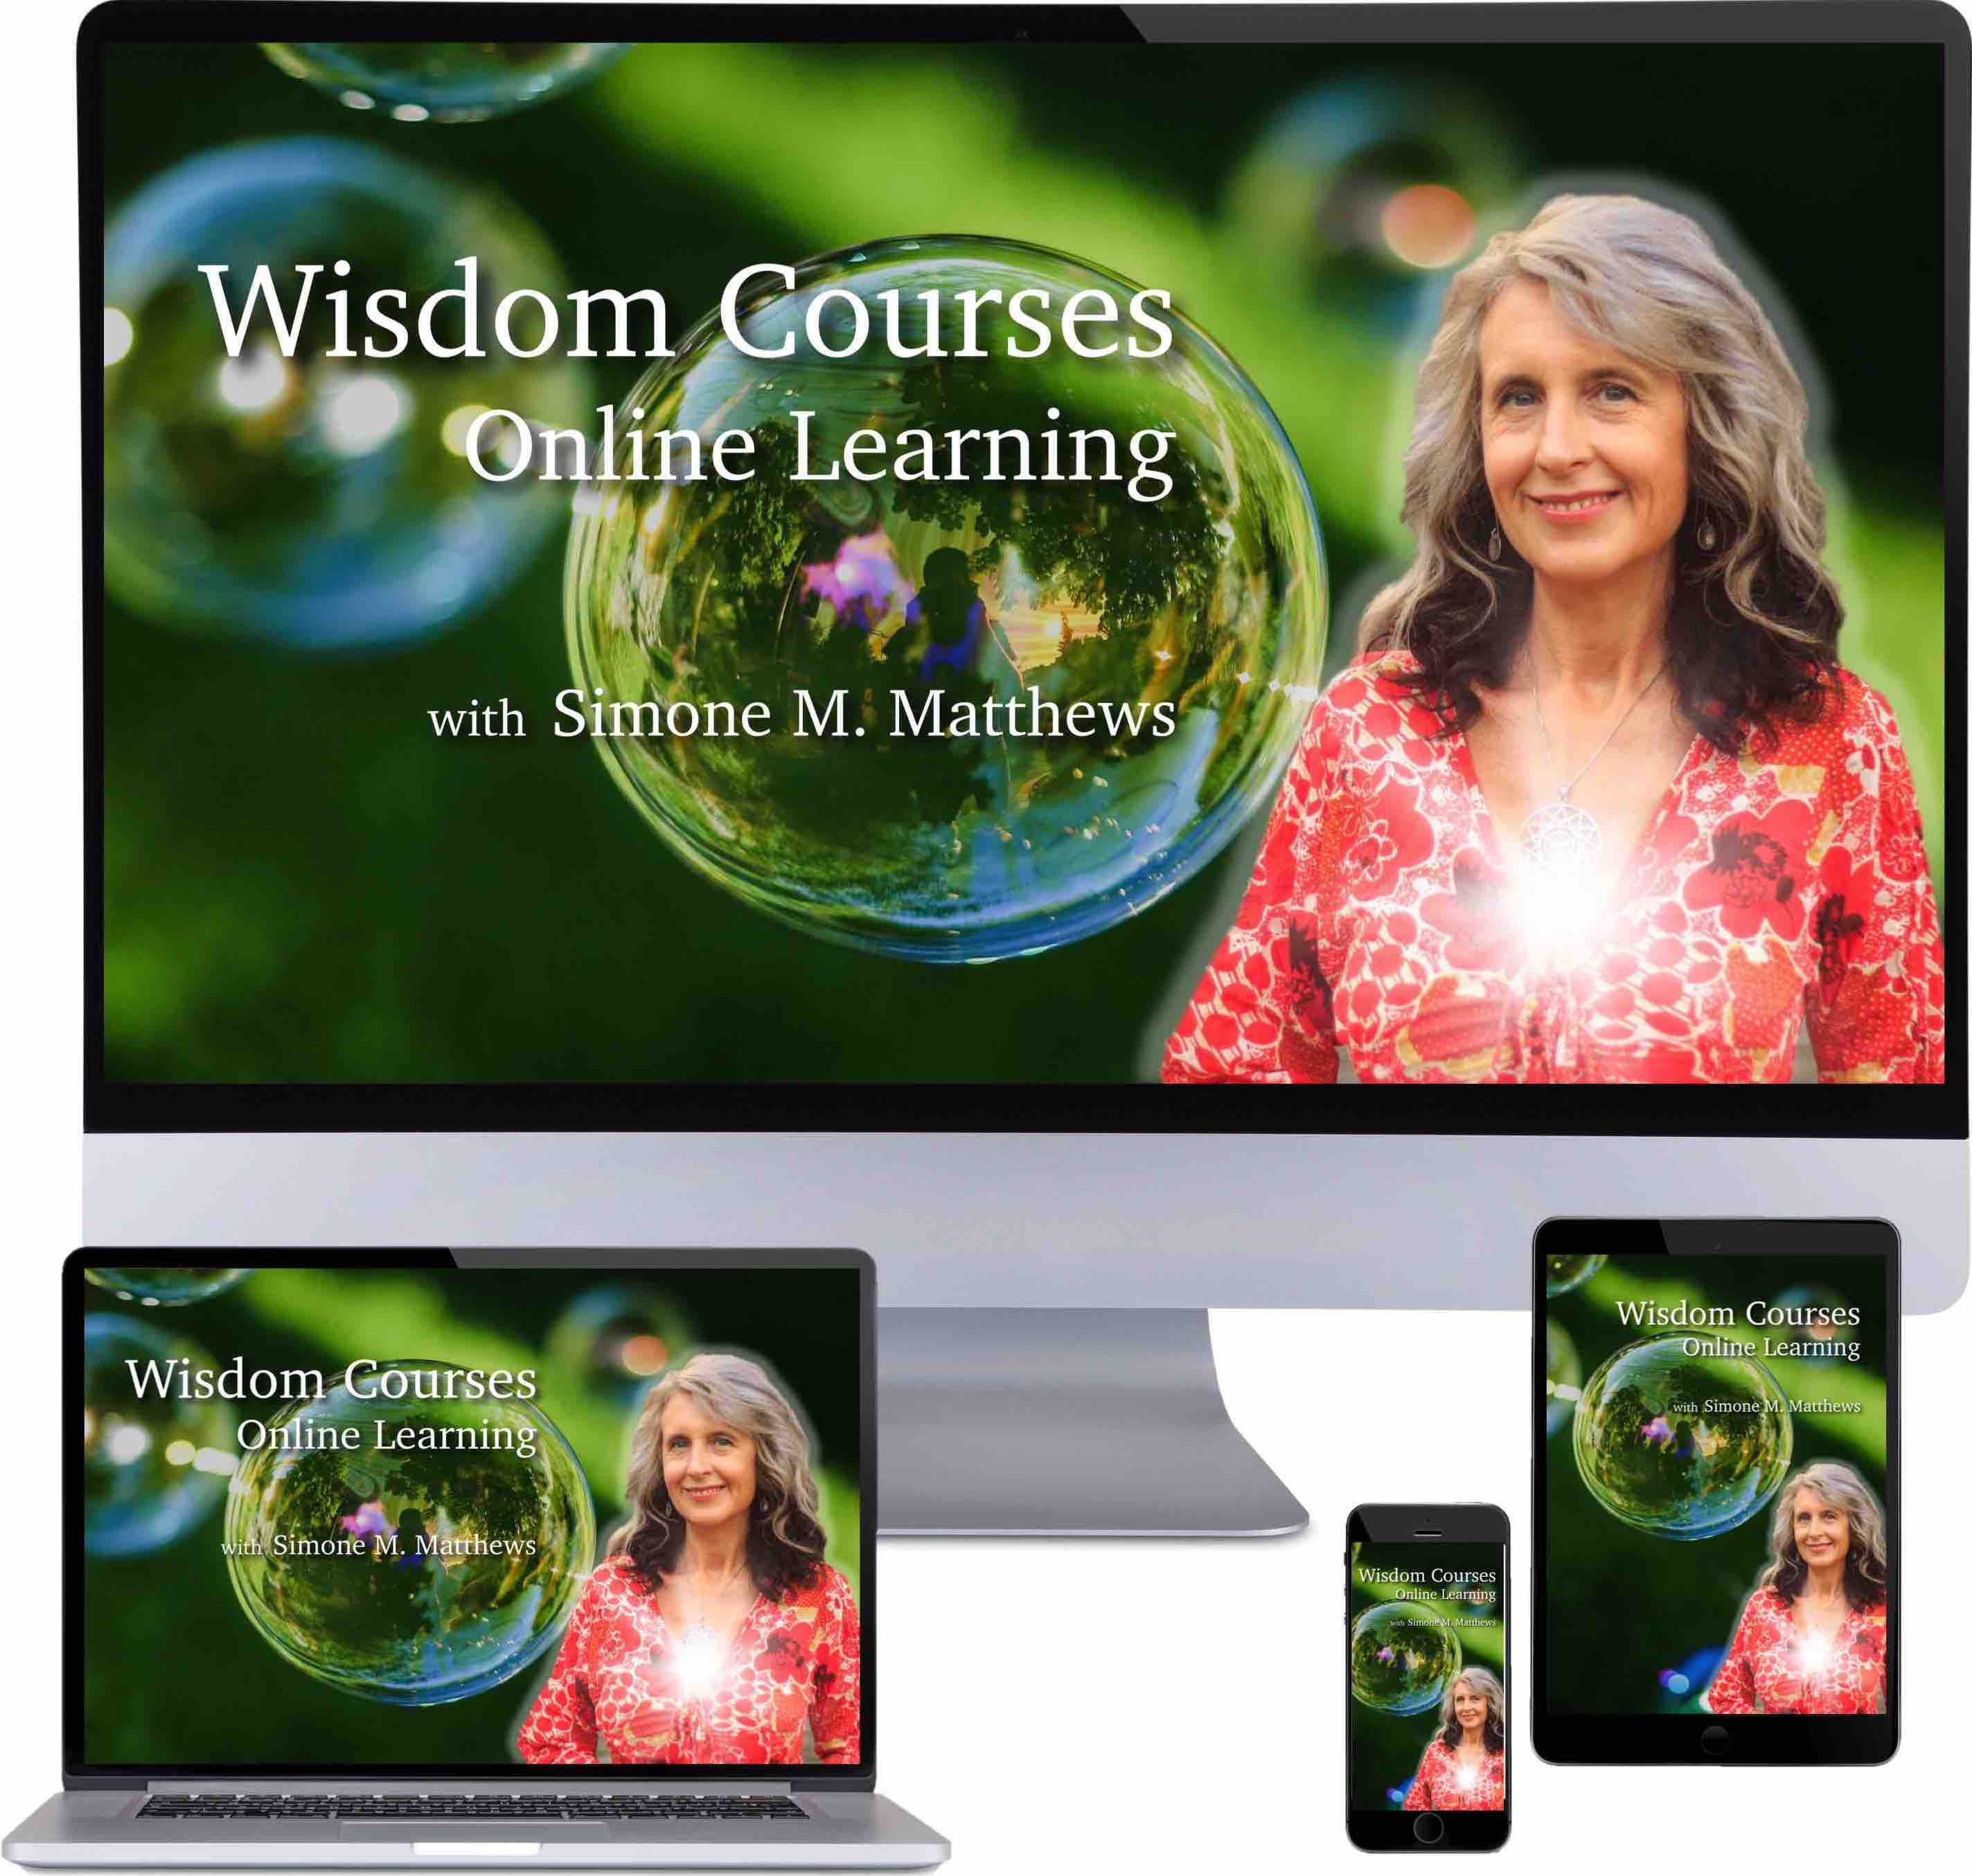 Wisdom Courses - Online Learning